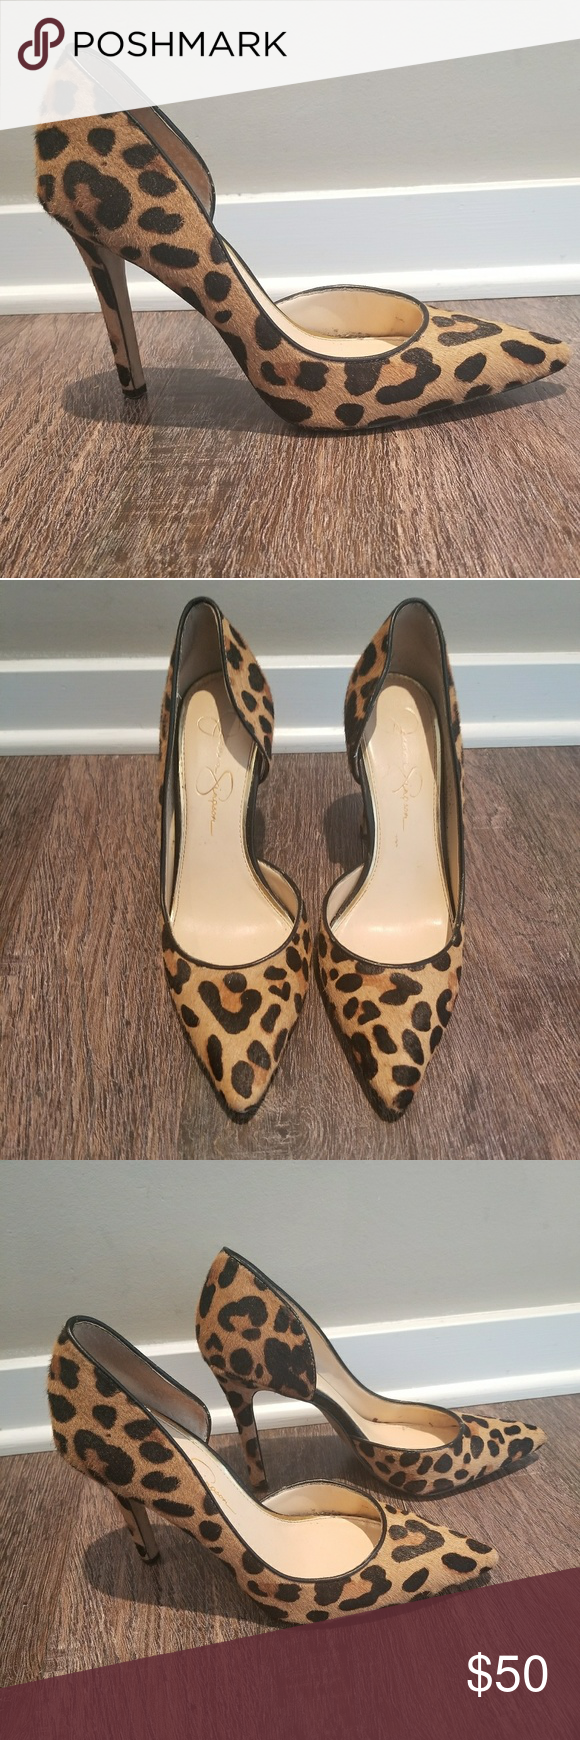 a526d119667 Jessica Simpson Leopard Pump Heels Claudette 🐆 Jessica Simpson O Orsay Claudette  Pump. Worn handful of times. Some wear and tear